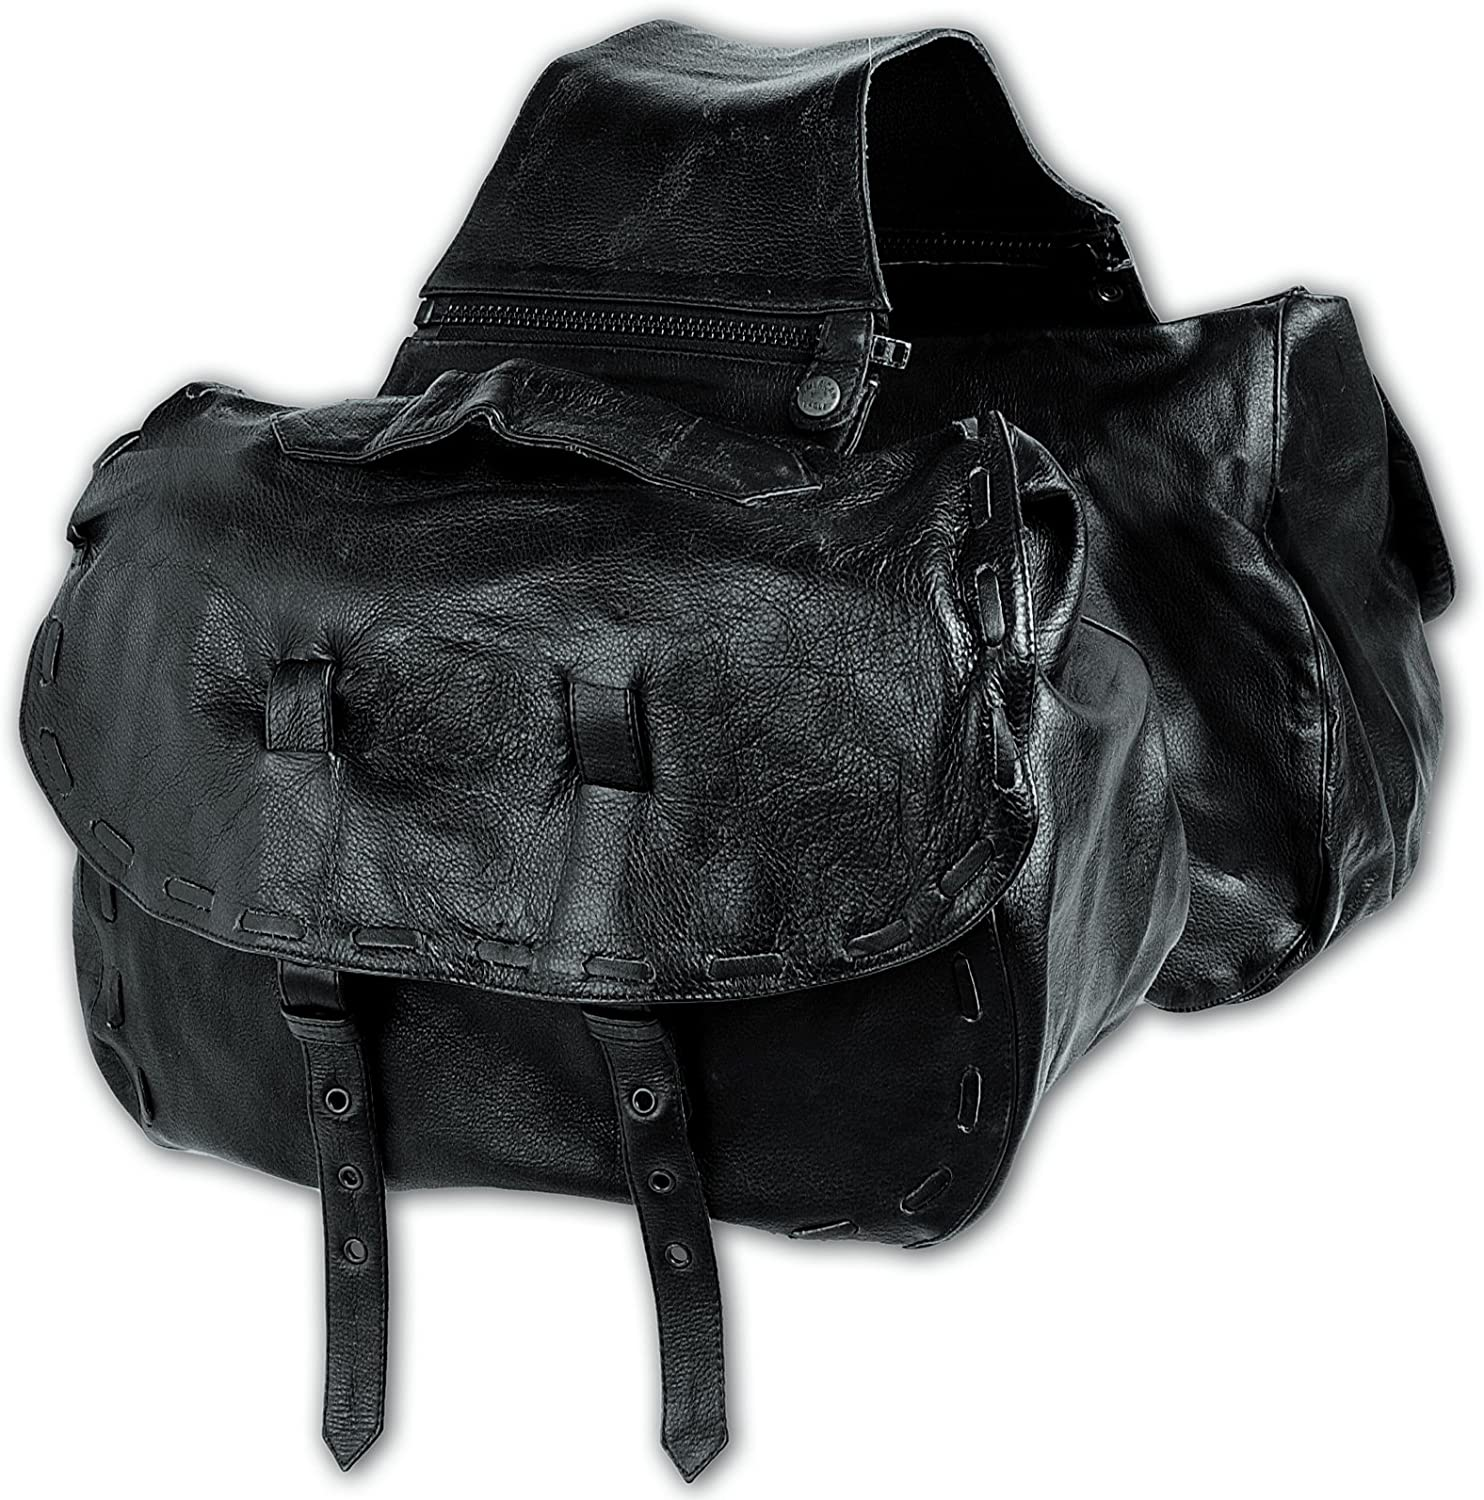 A-Pro Panniers Saddle Bags Leather Soft Motorcycle 格安店 Fit 税込 Universal